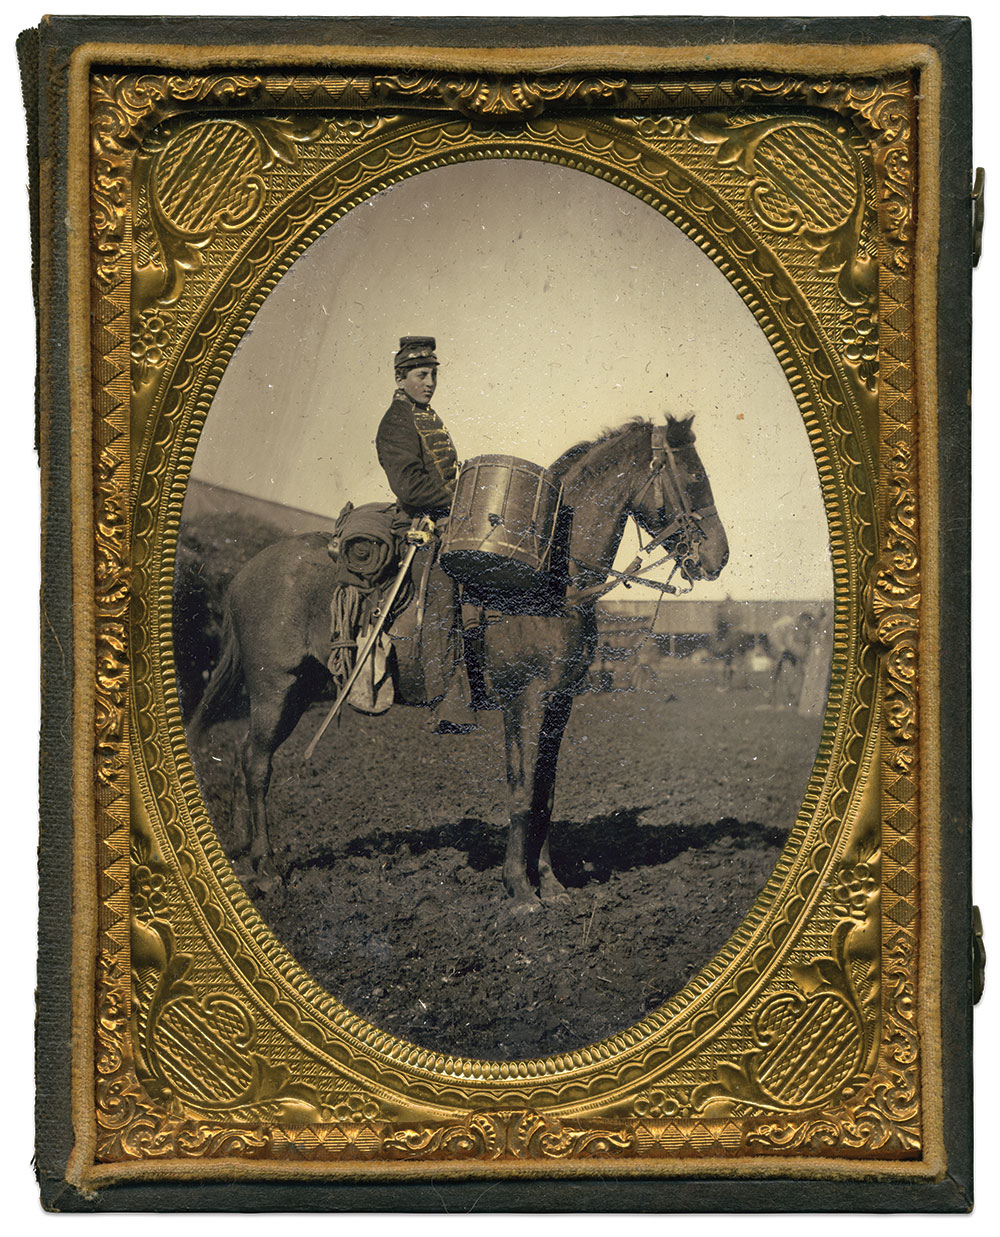 Quarter-plate ambrotype by an unidentified photographer. Rick Brown Collection of American Photography.